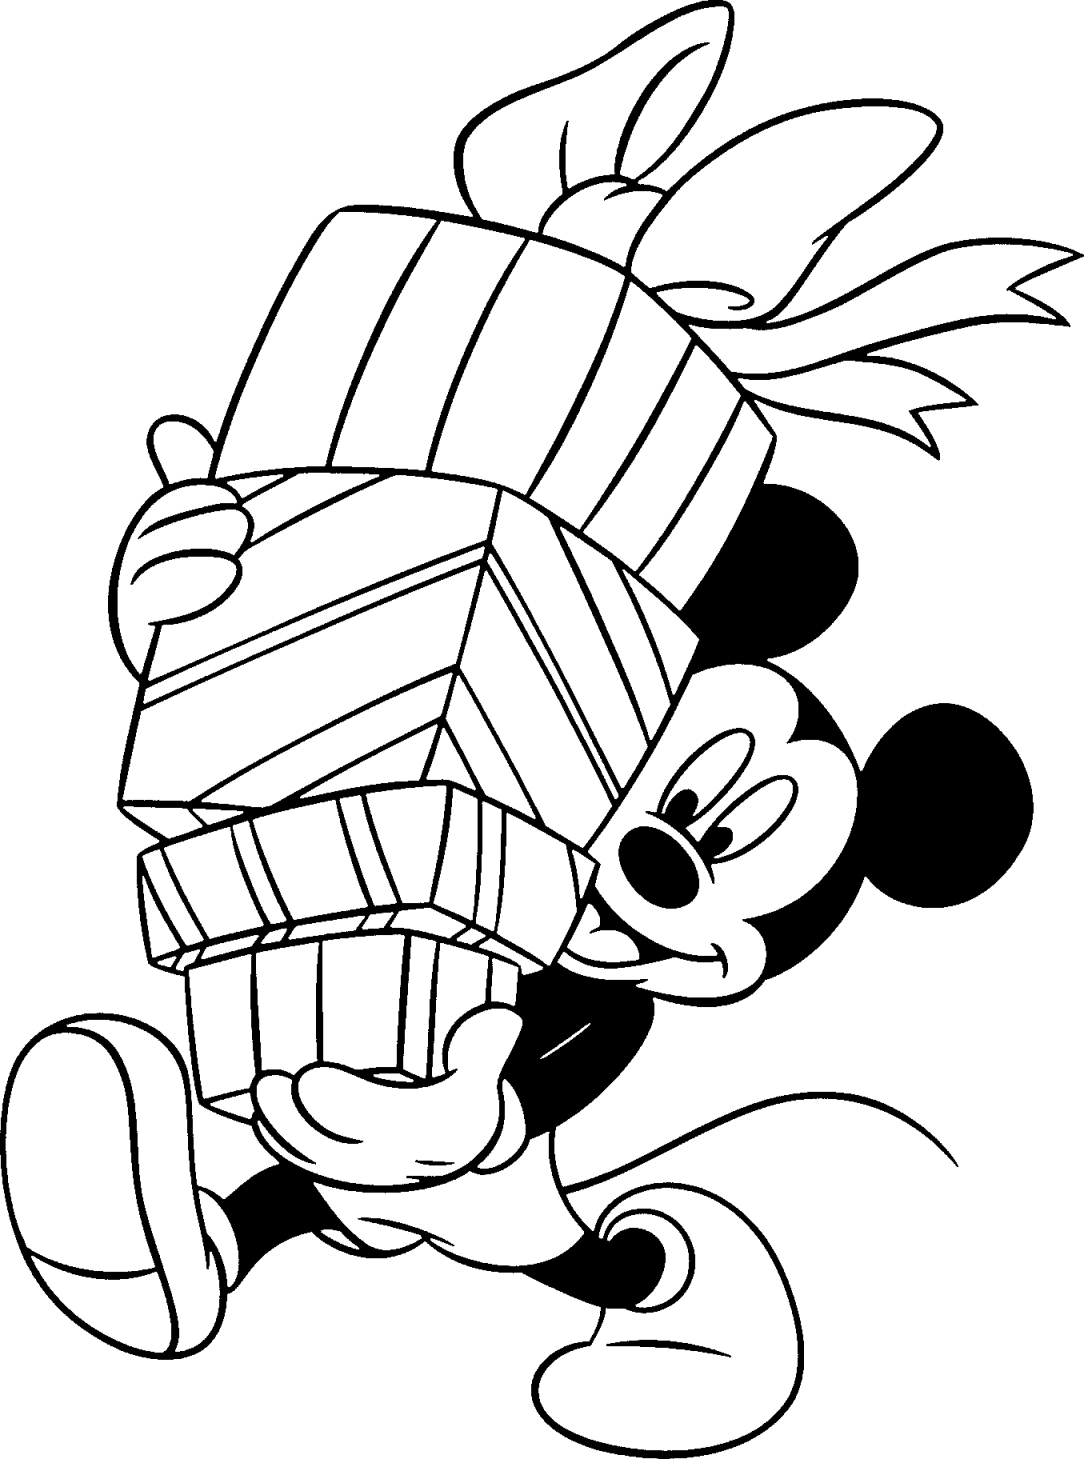 1084x1459 disney world coloring page archives